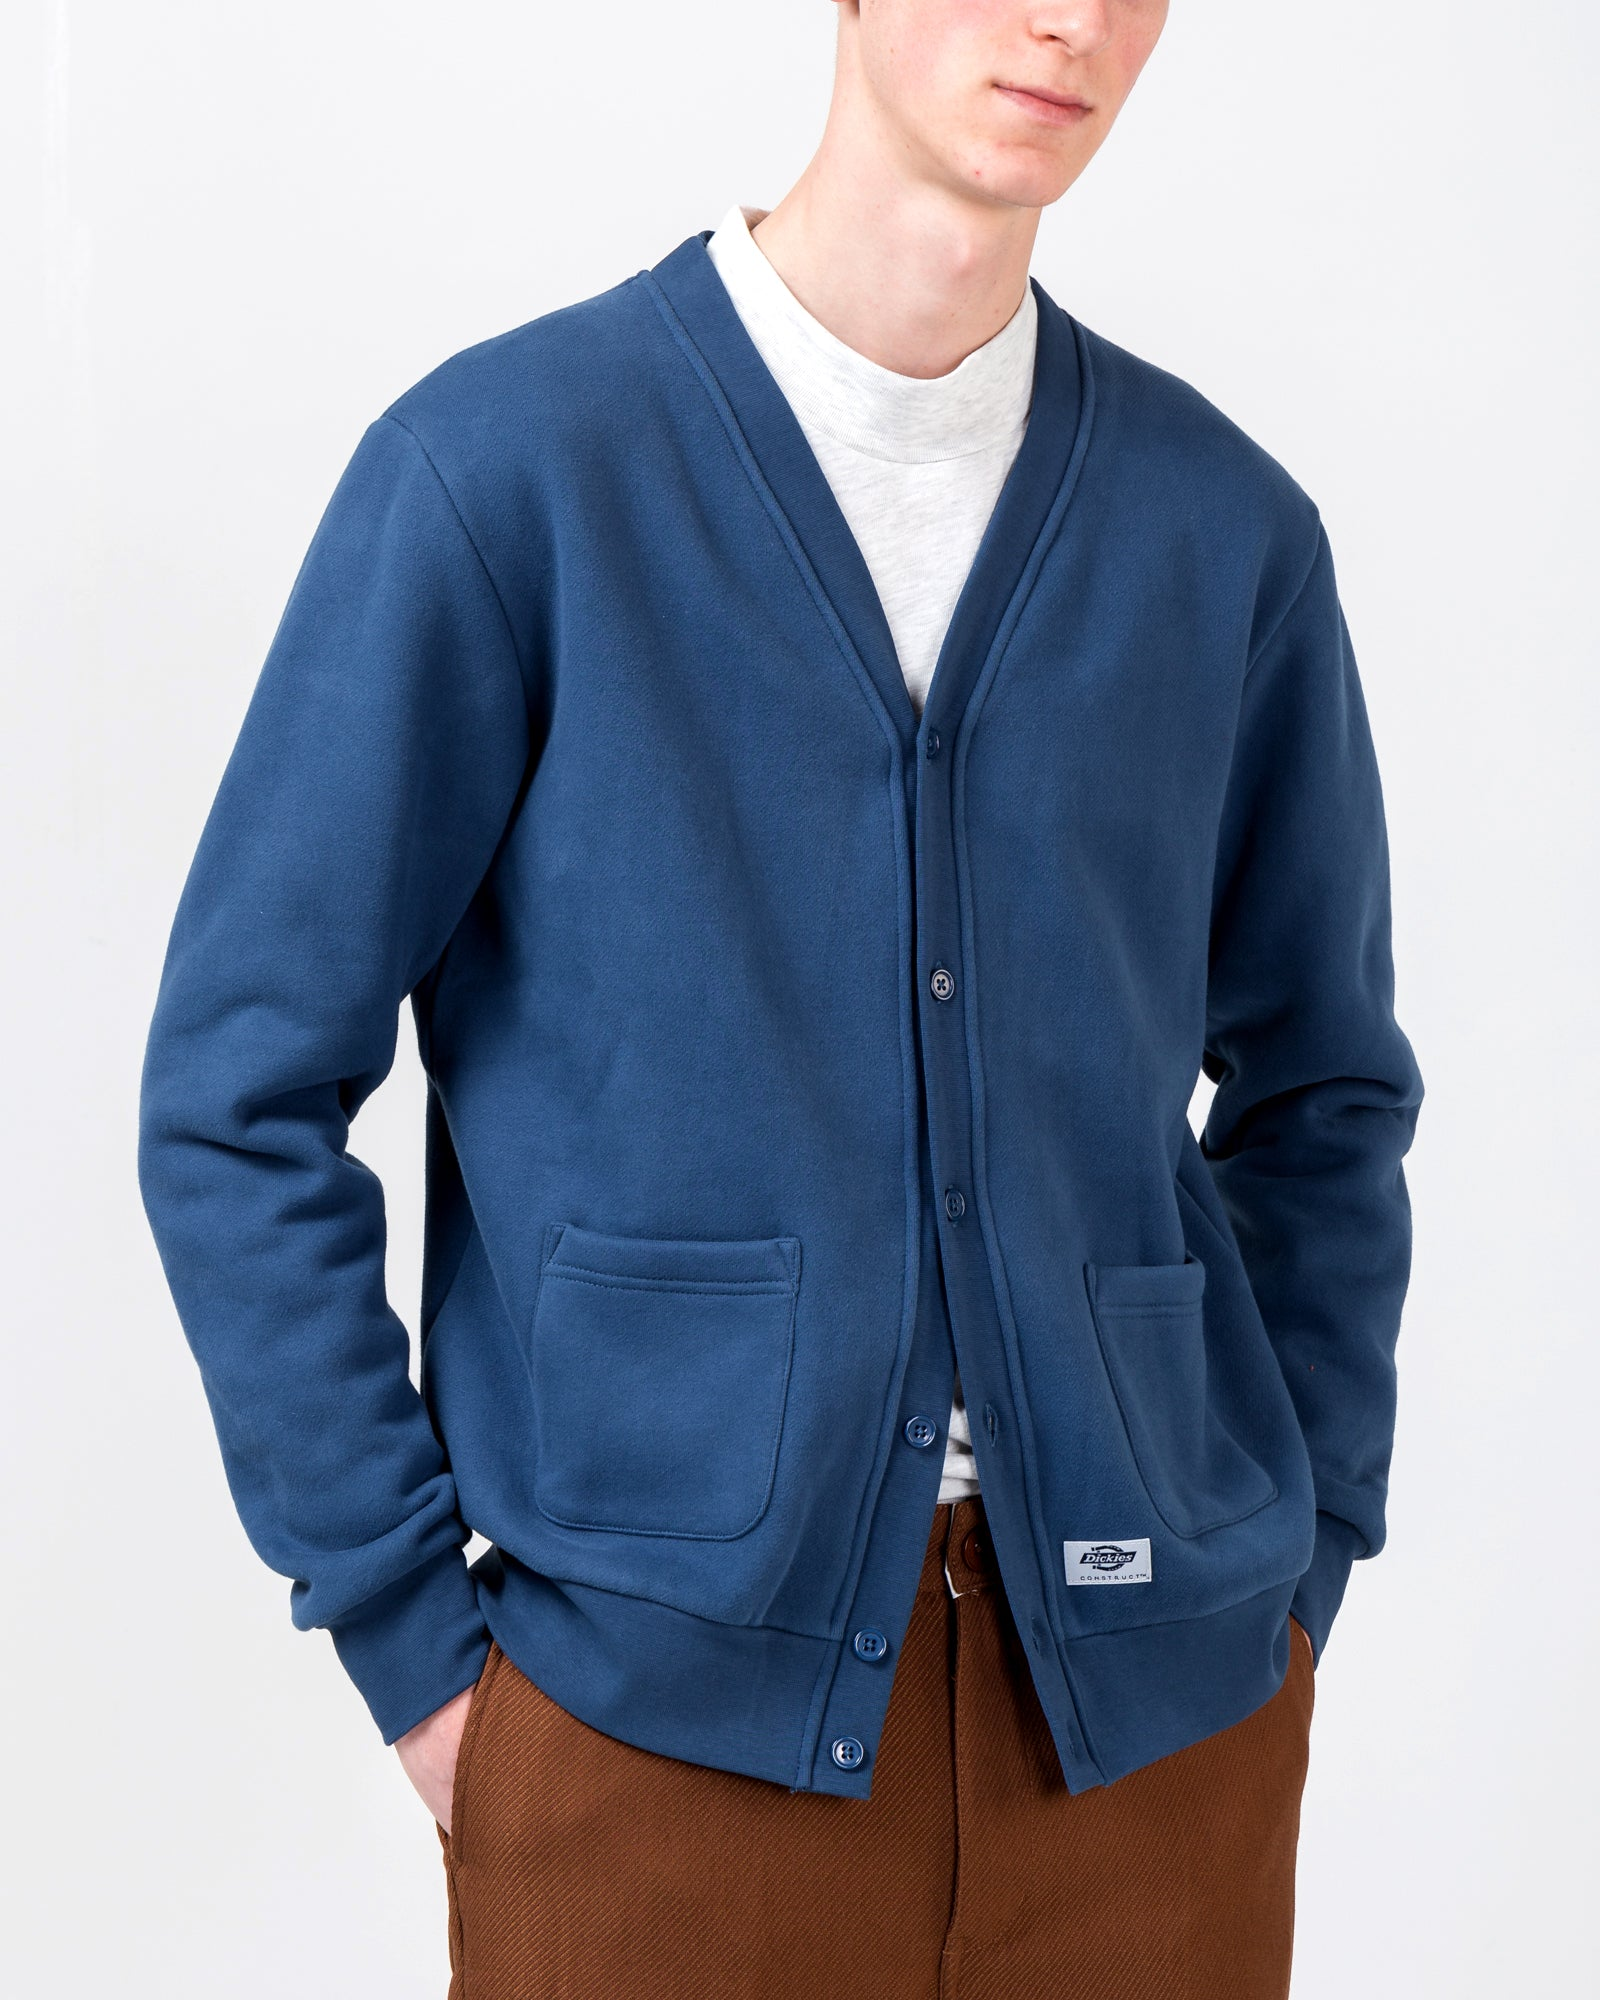 Cardigan in Slate Blue | Dickies Construct